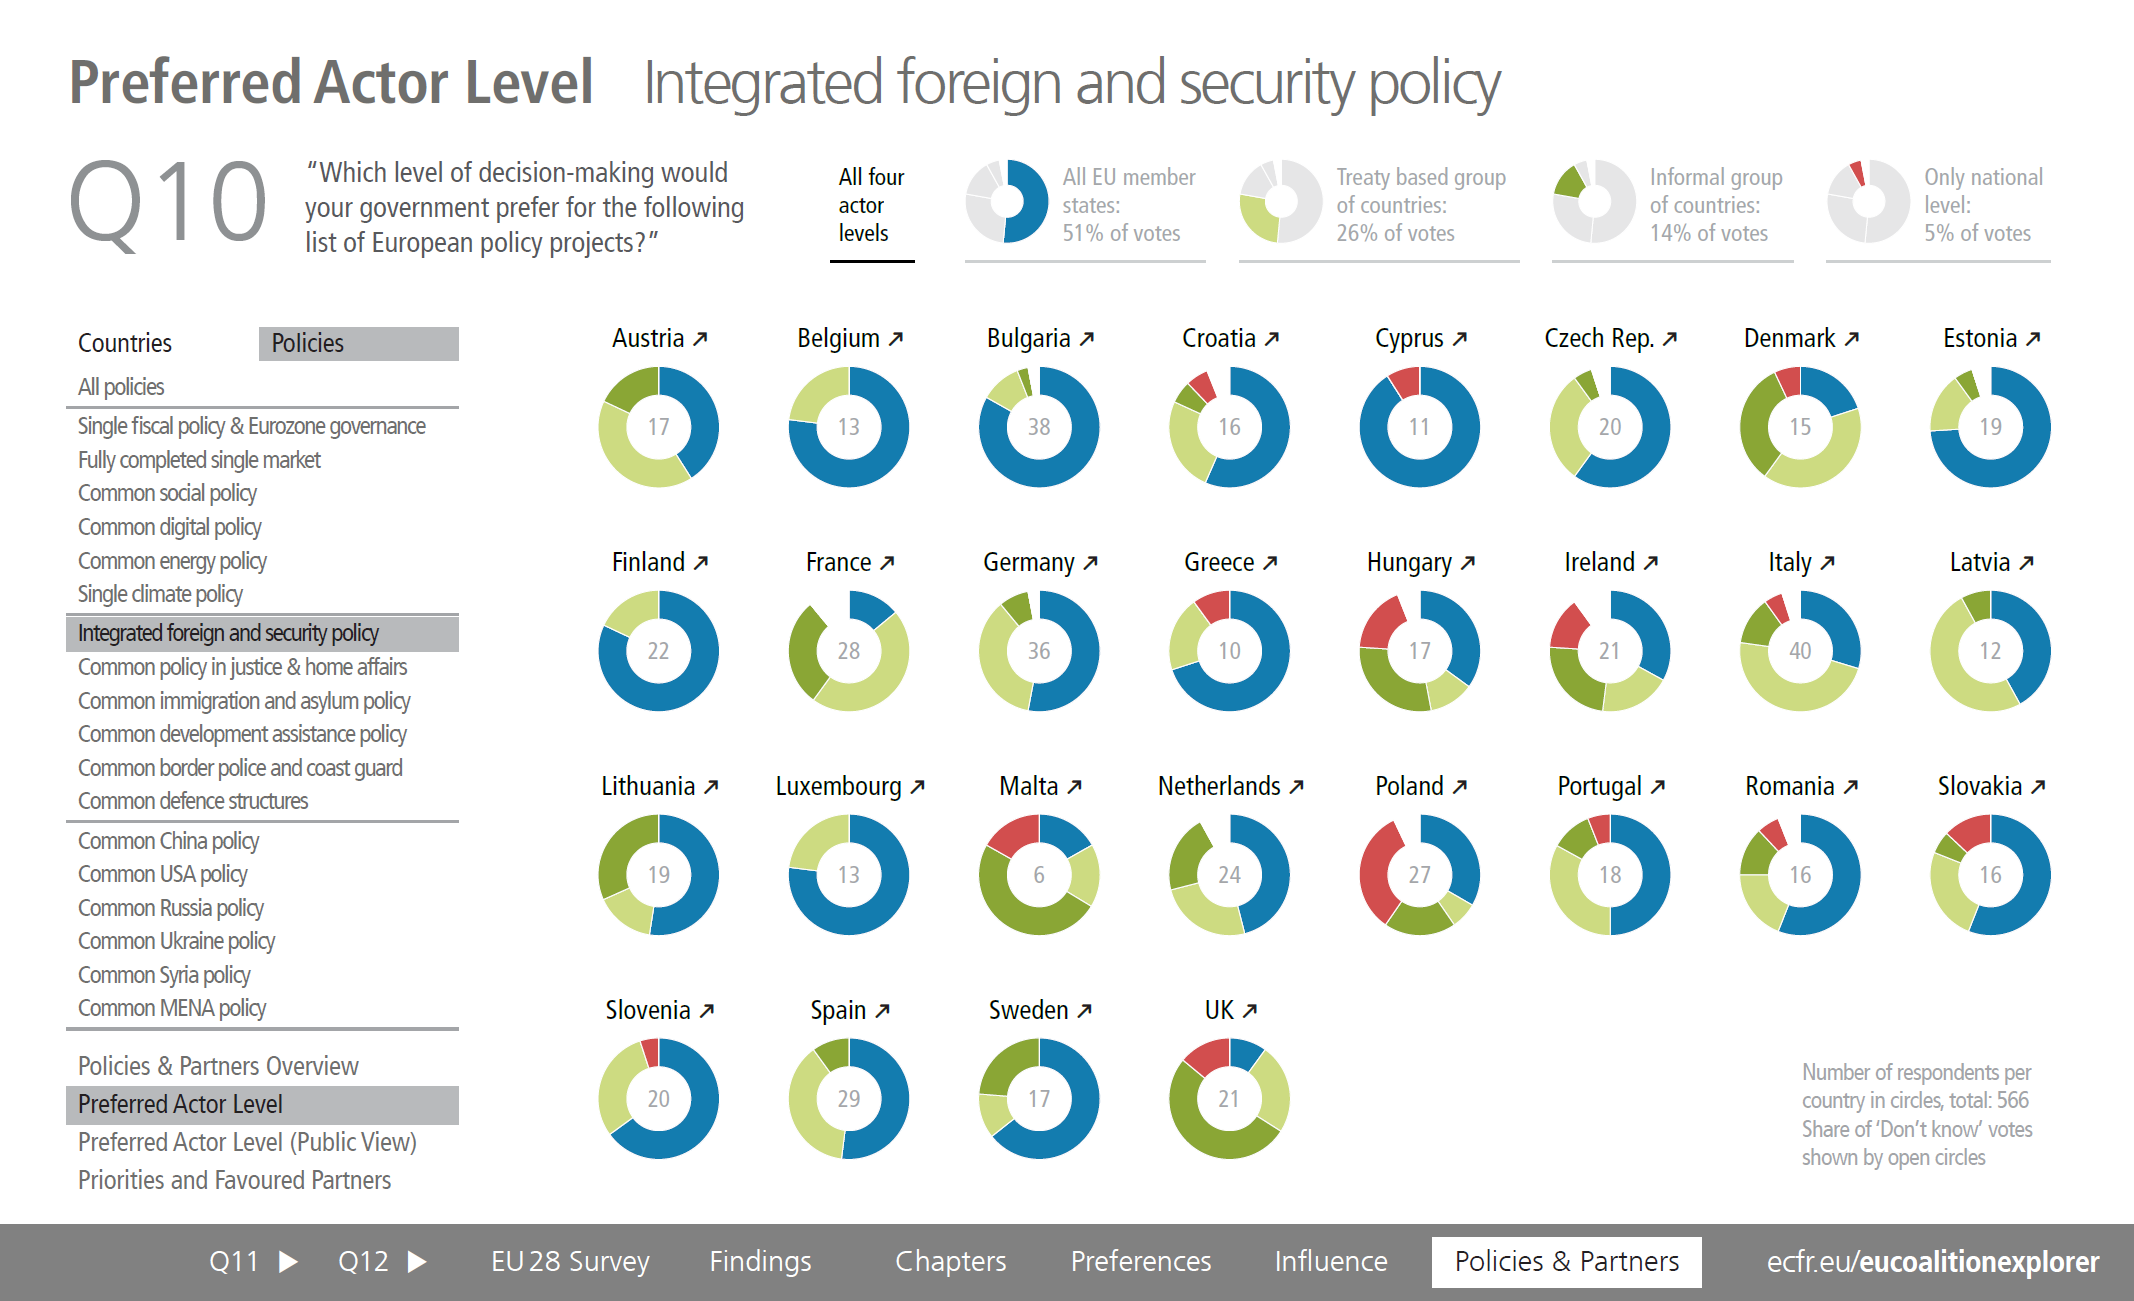 Preferred Actor Level Integrated foreign and security policy